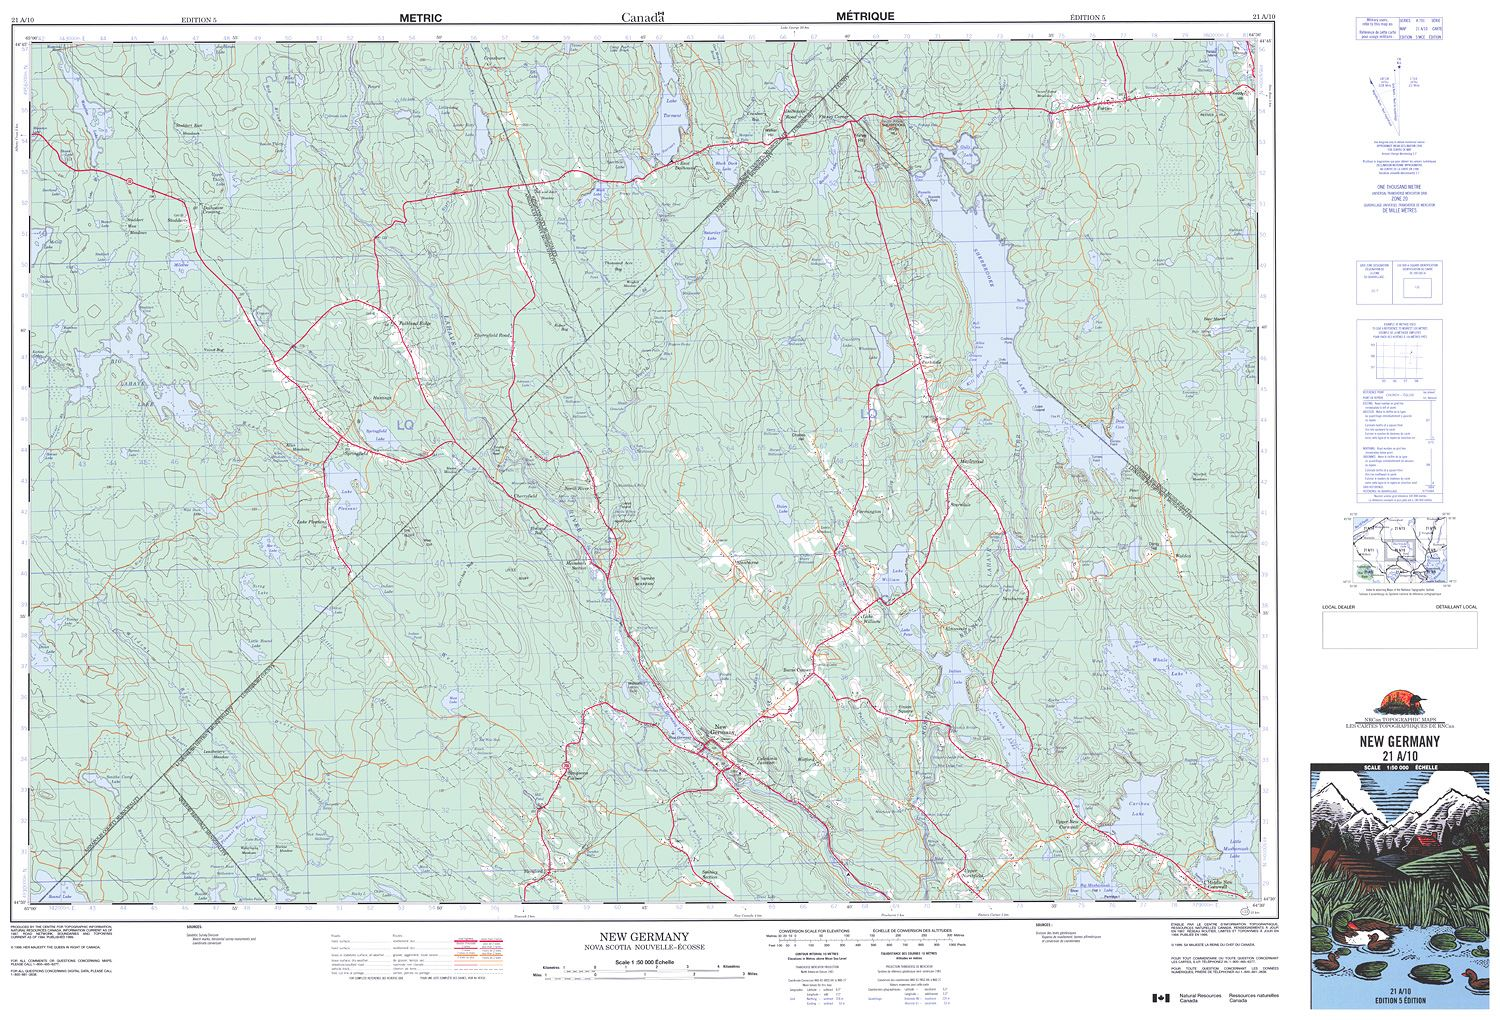 021A10 - NEW GERMANY - Topographic Map